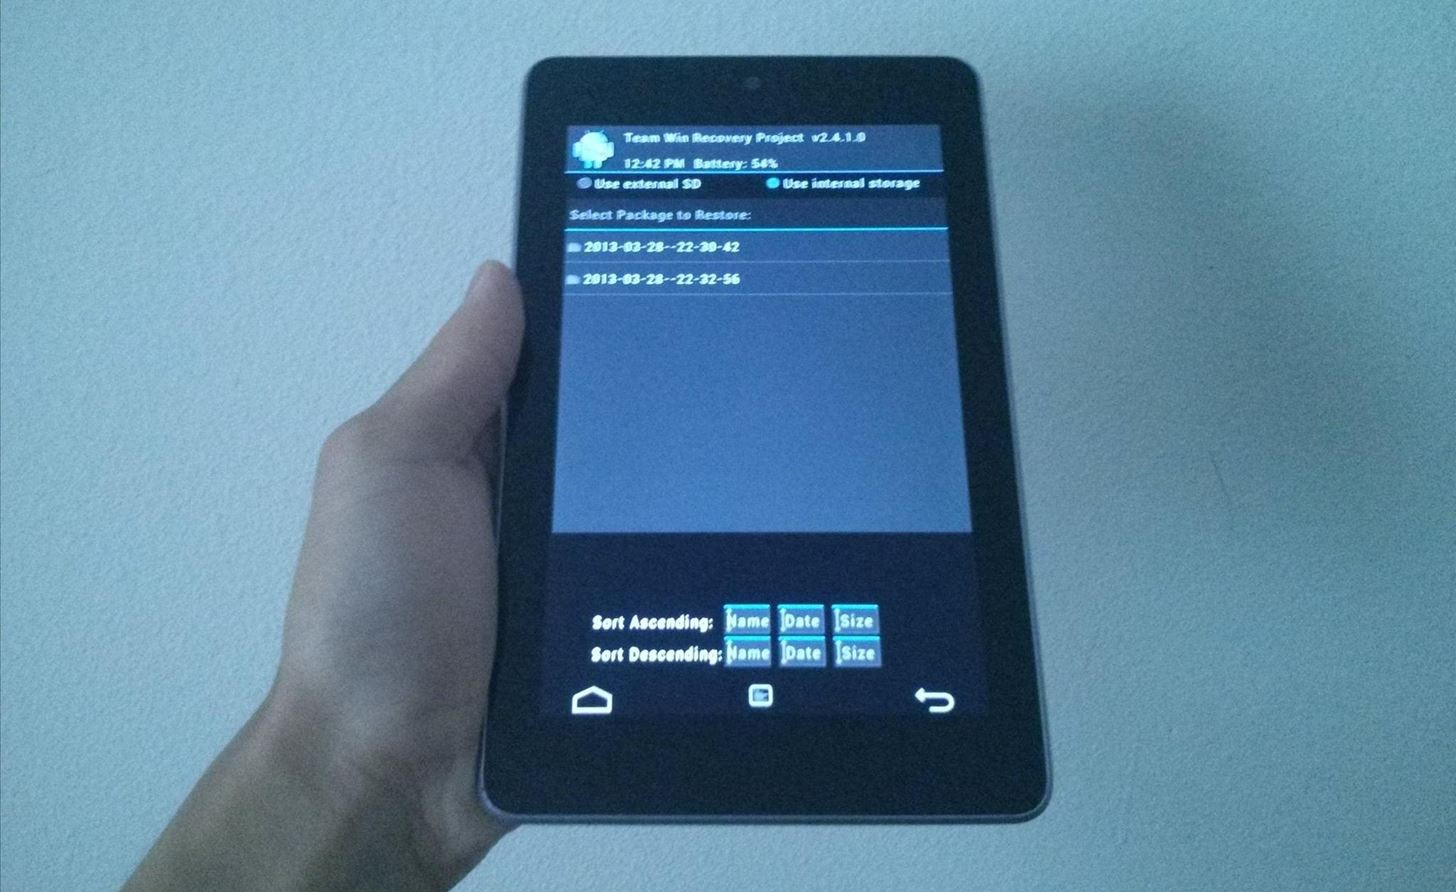 The Definitive Guide on How to Restore Your Nexus 7 Tablet (Even if You've Bricked It)